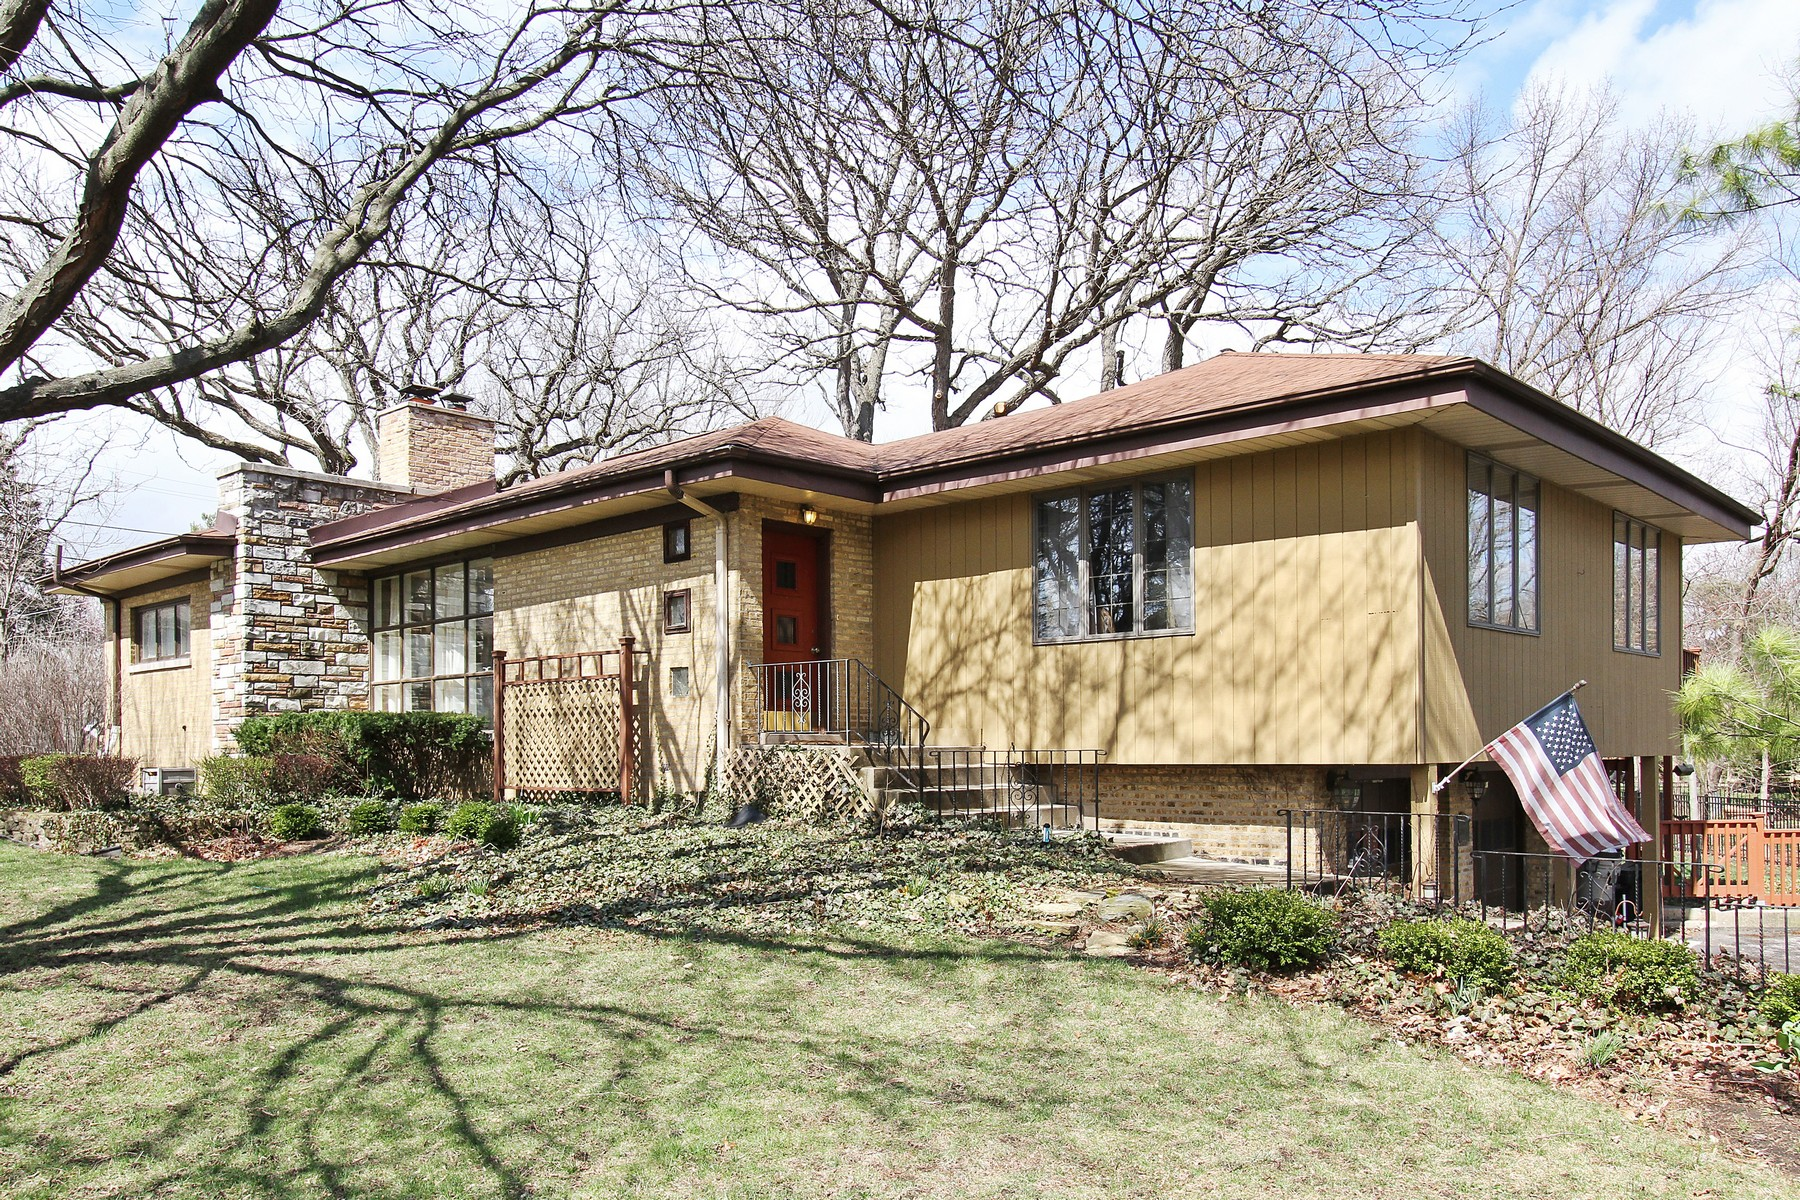 Moradia para Venda às Fabulous Corner Lot Brick Ranch 12143 S 71st Avenue Palos Heights, Illinois, 60463 Estados Unidos